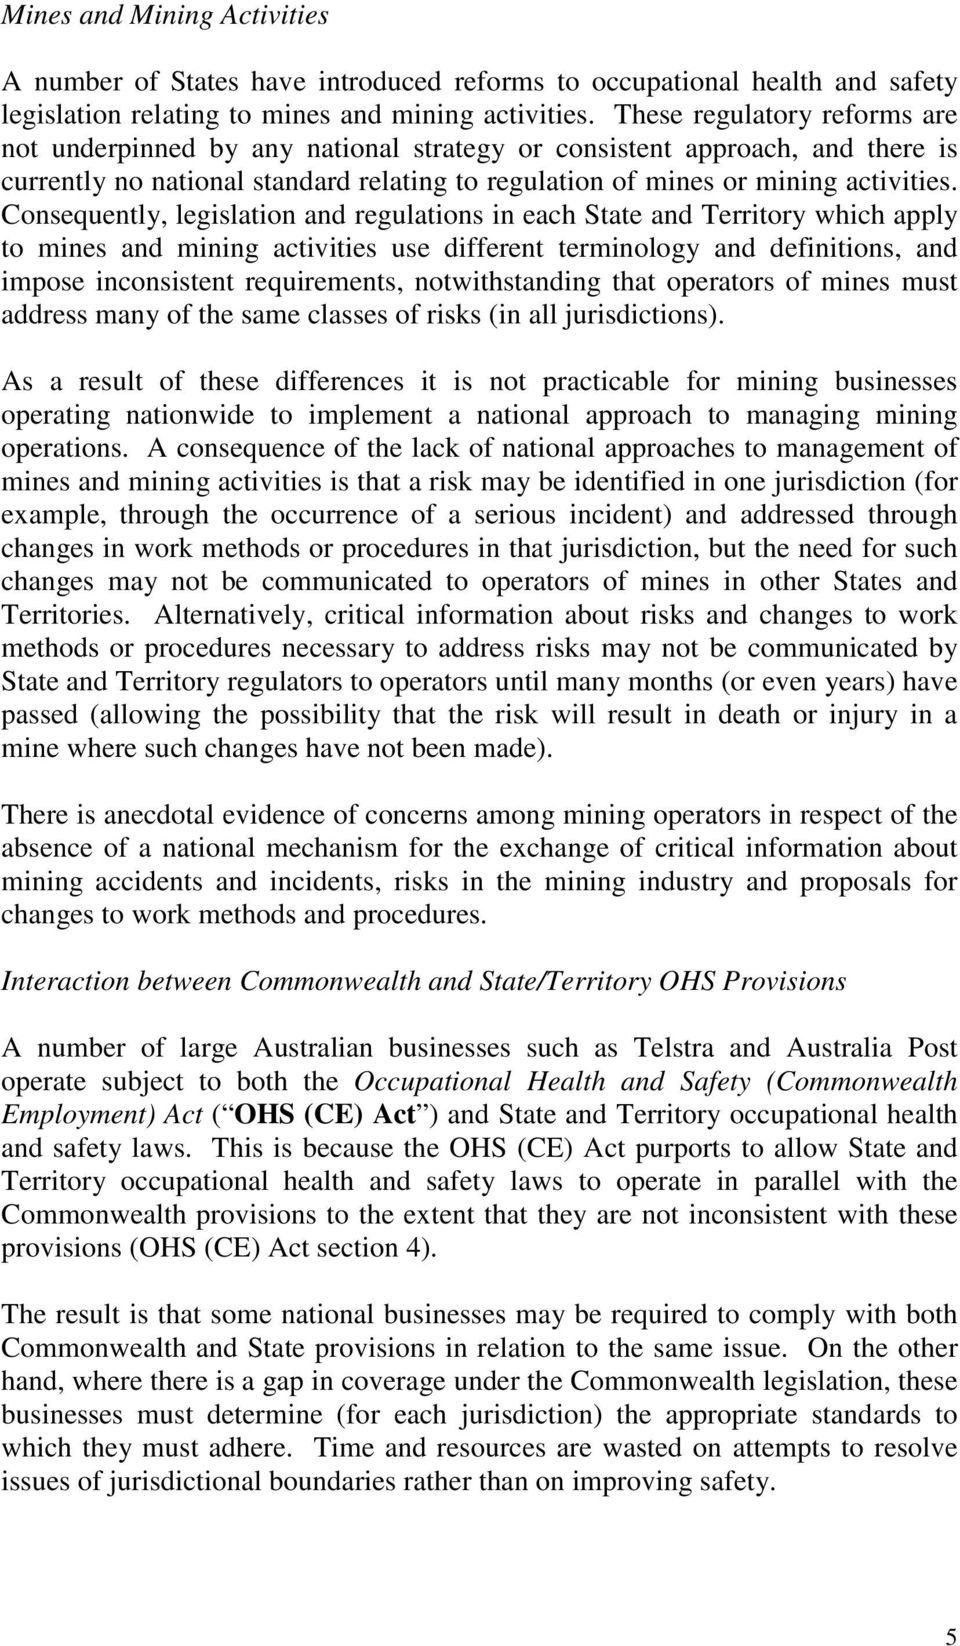 Consequently, legislation and regulations in each State and Territory which apply to mines and mining activities use different terminology and definitions, and impose inconsistent requirements,